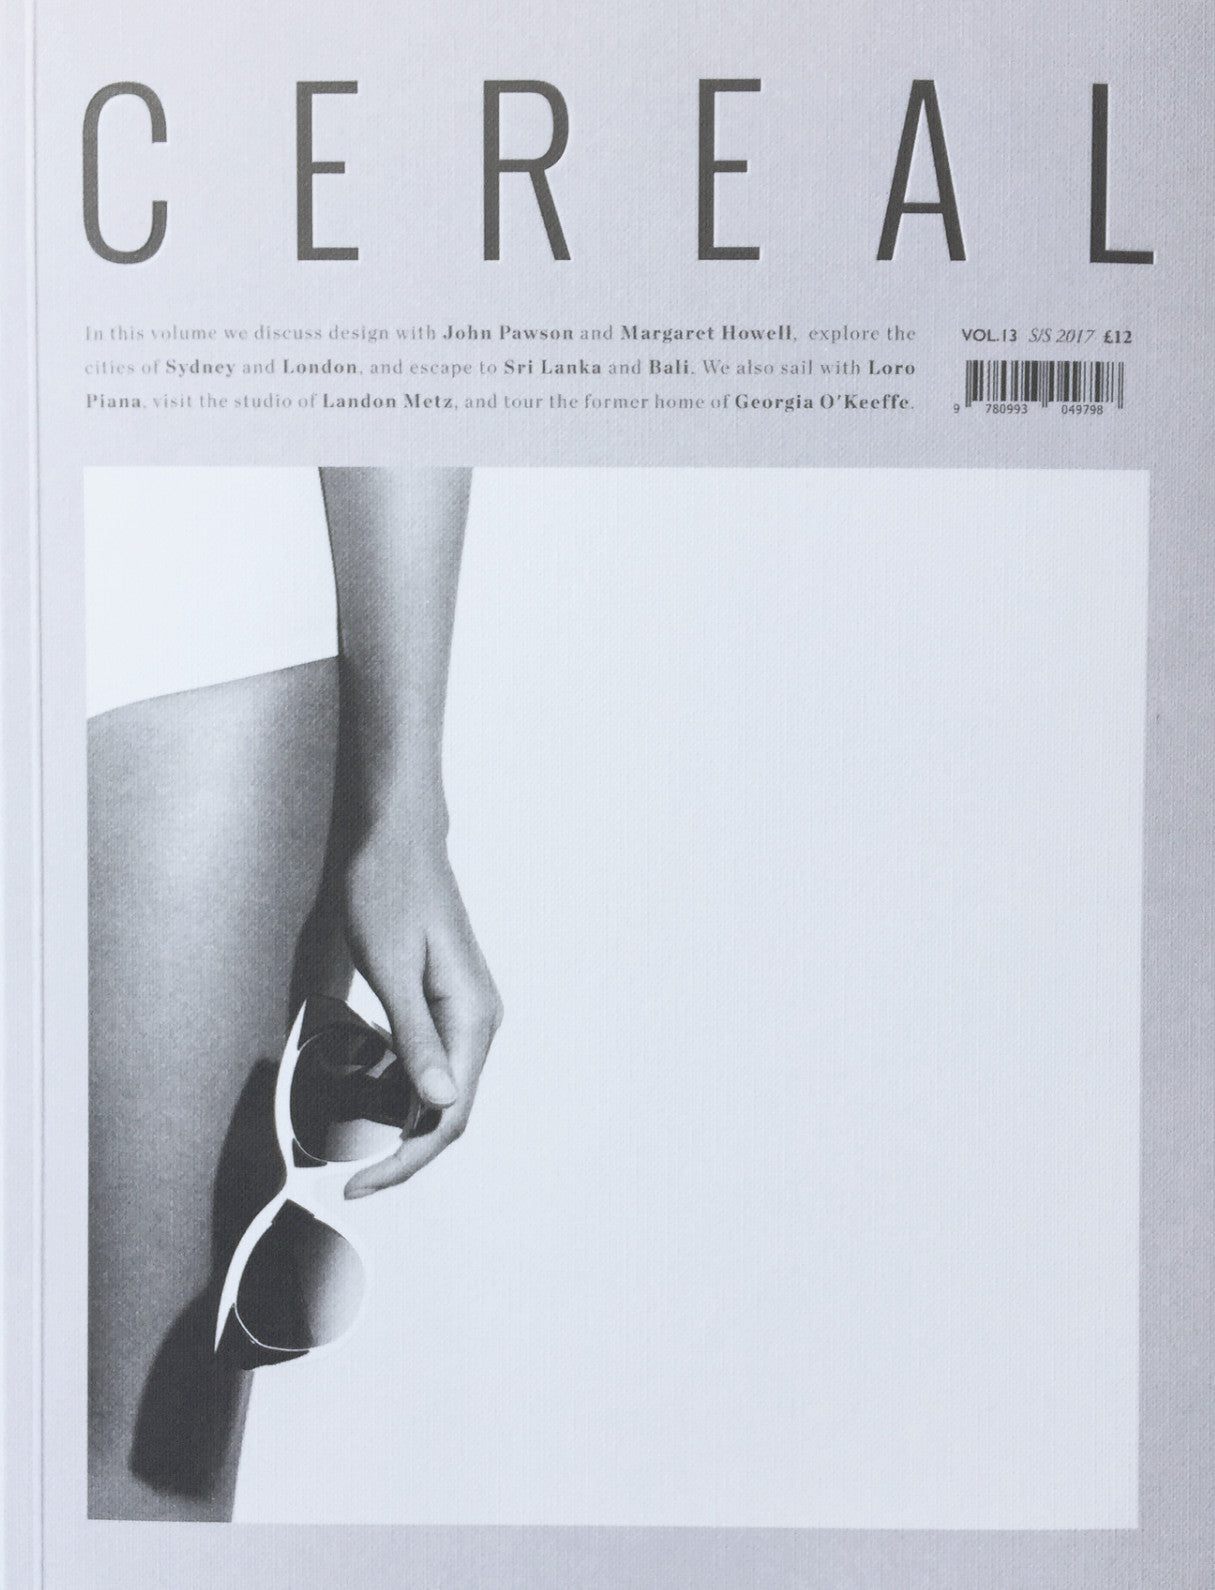 Cereal Magazine - Vol. 13